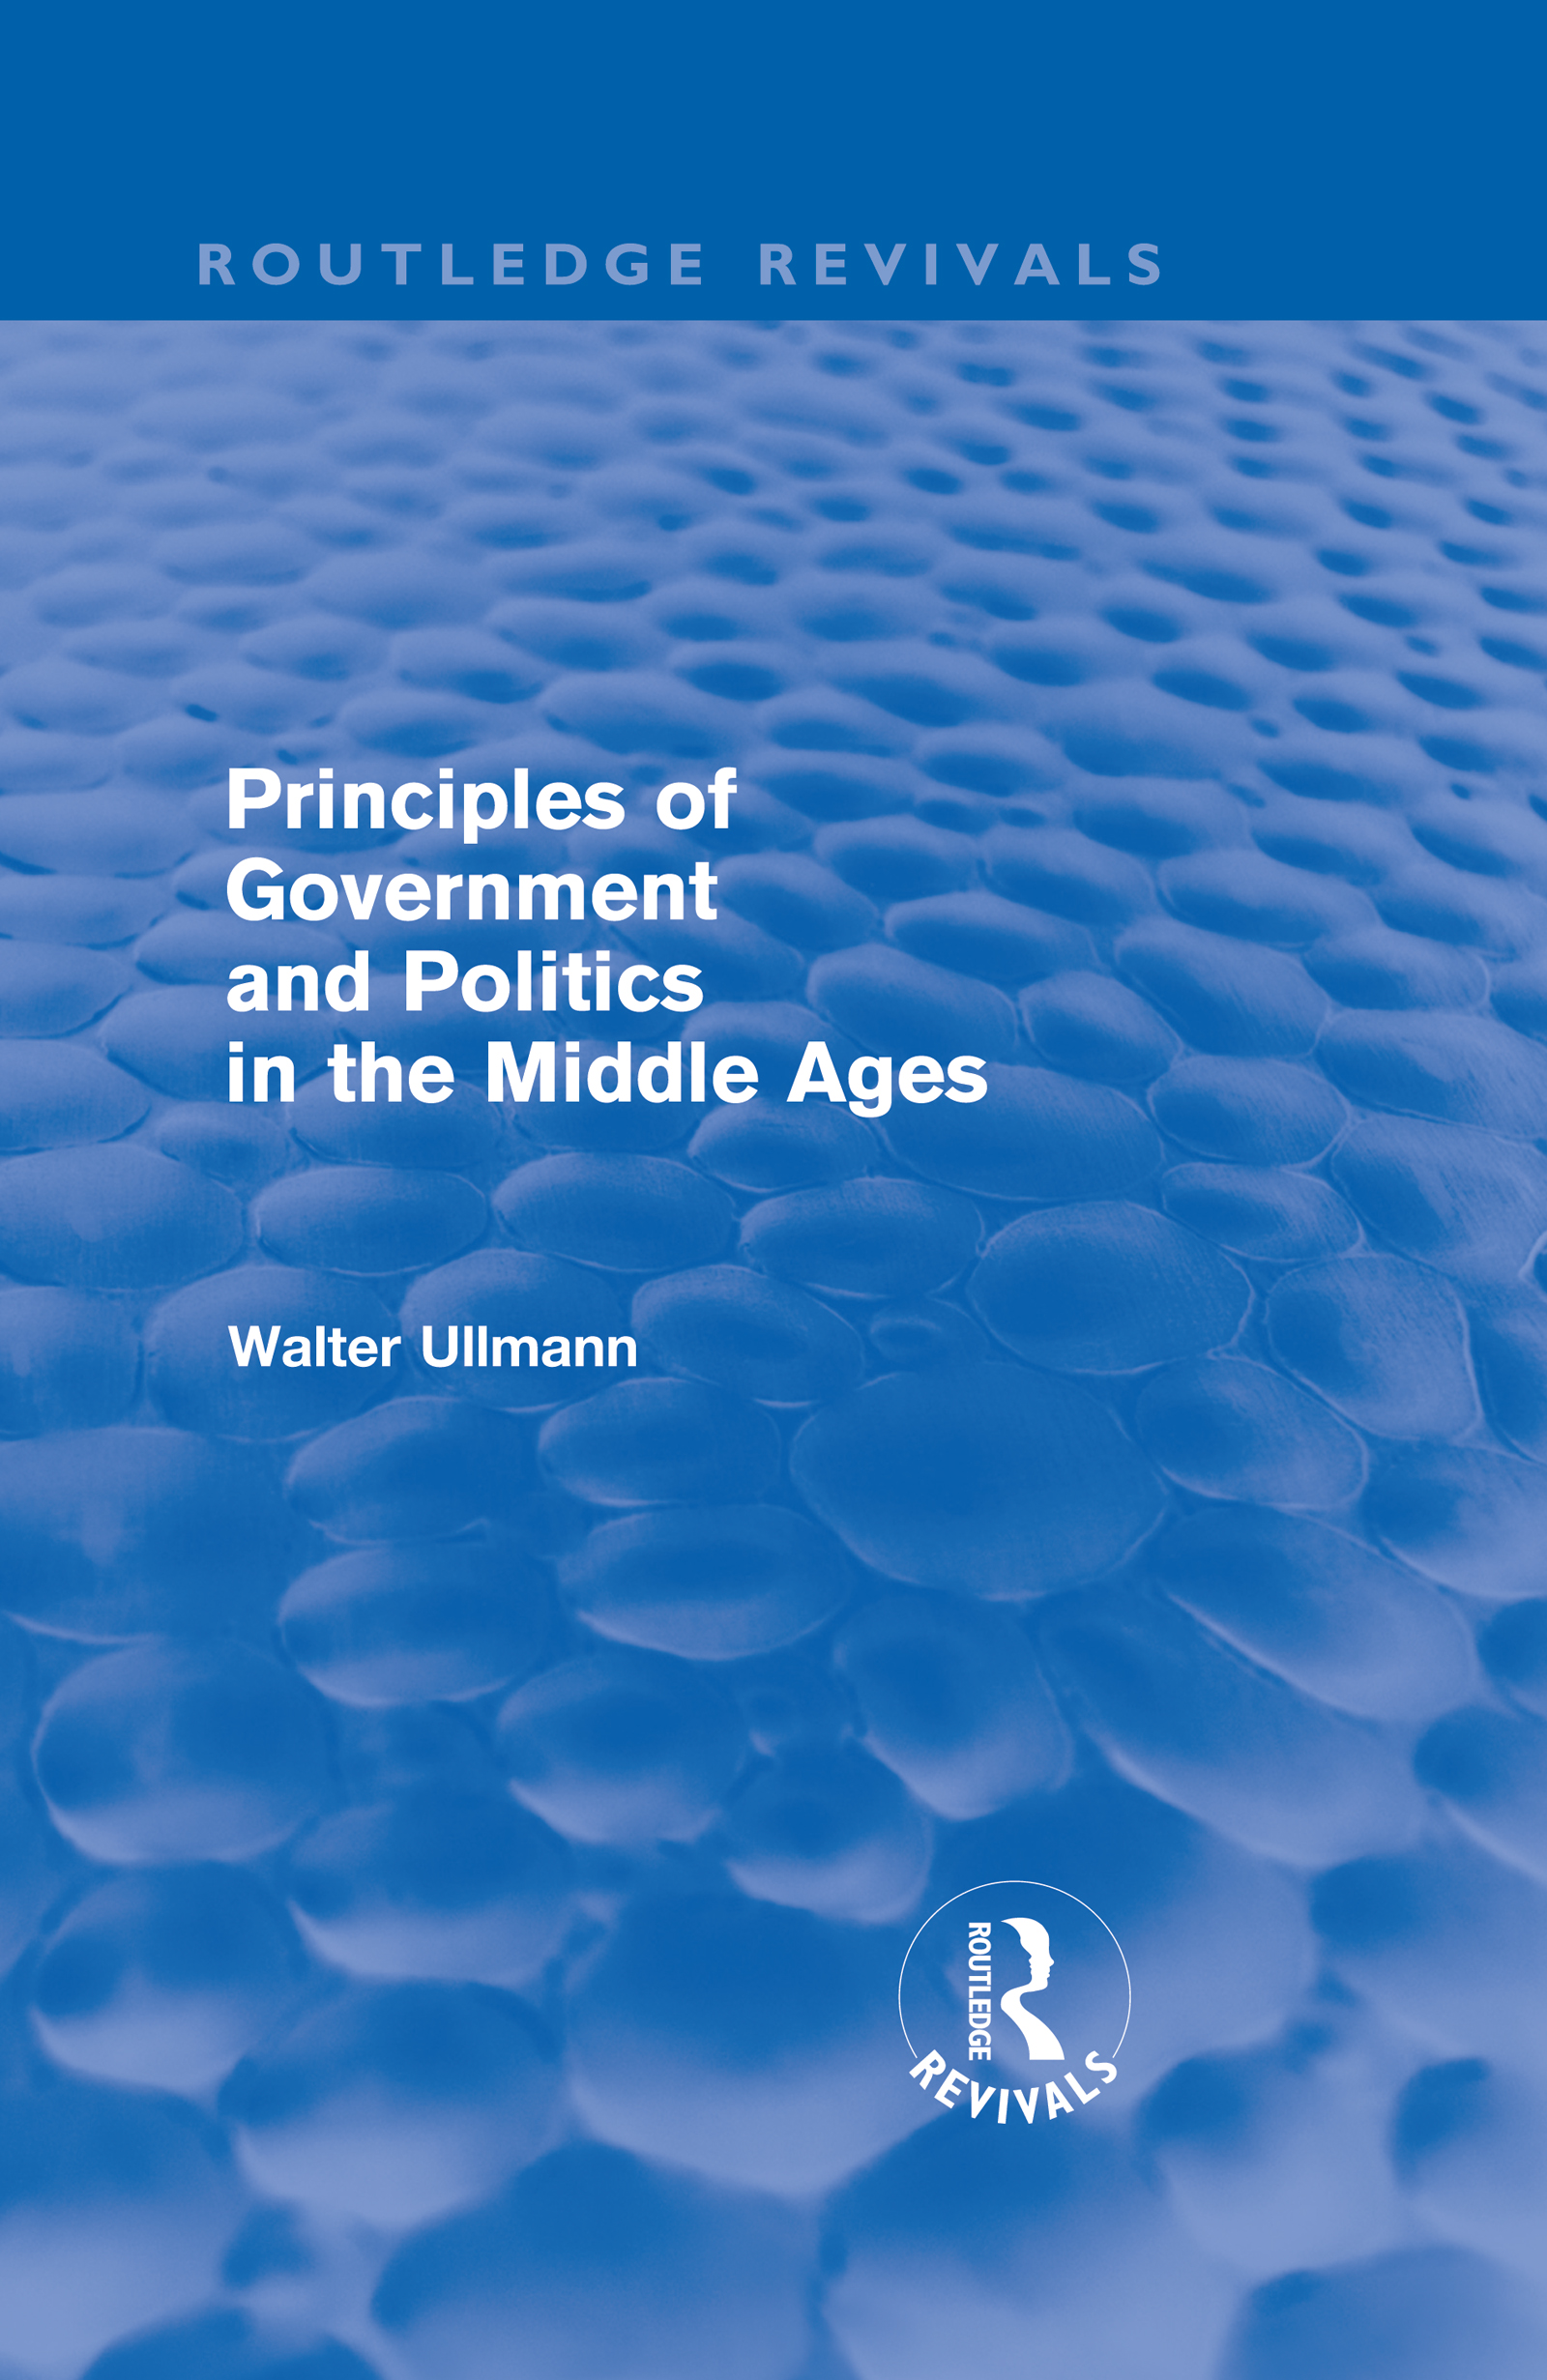 Principles of Government and Politics in the Middle Ages (Routledge Revivals) (Hardback) book cover